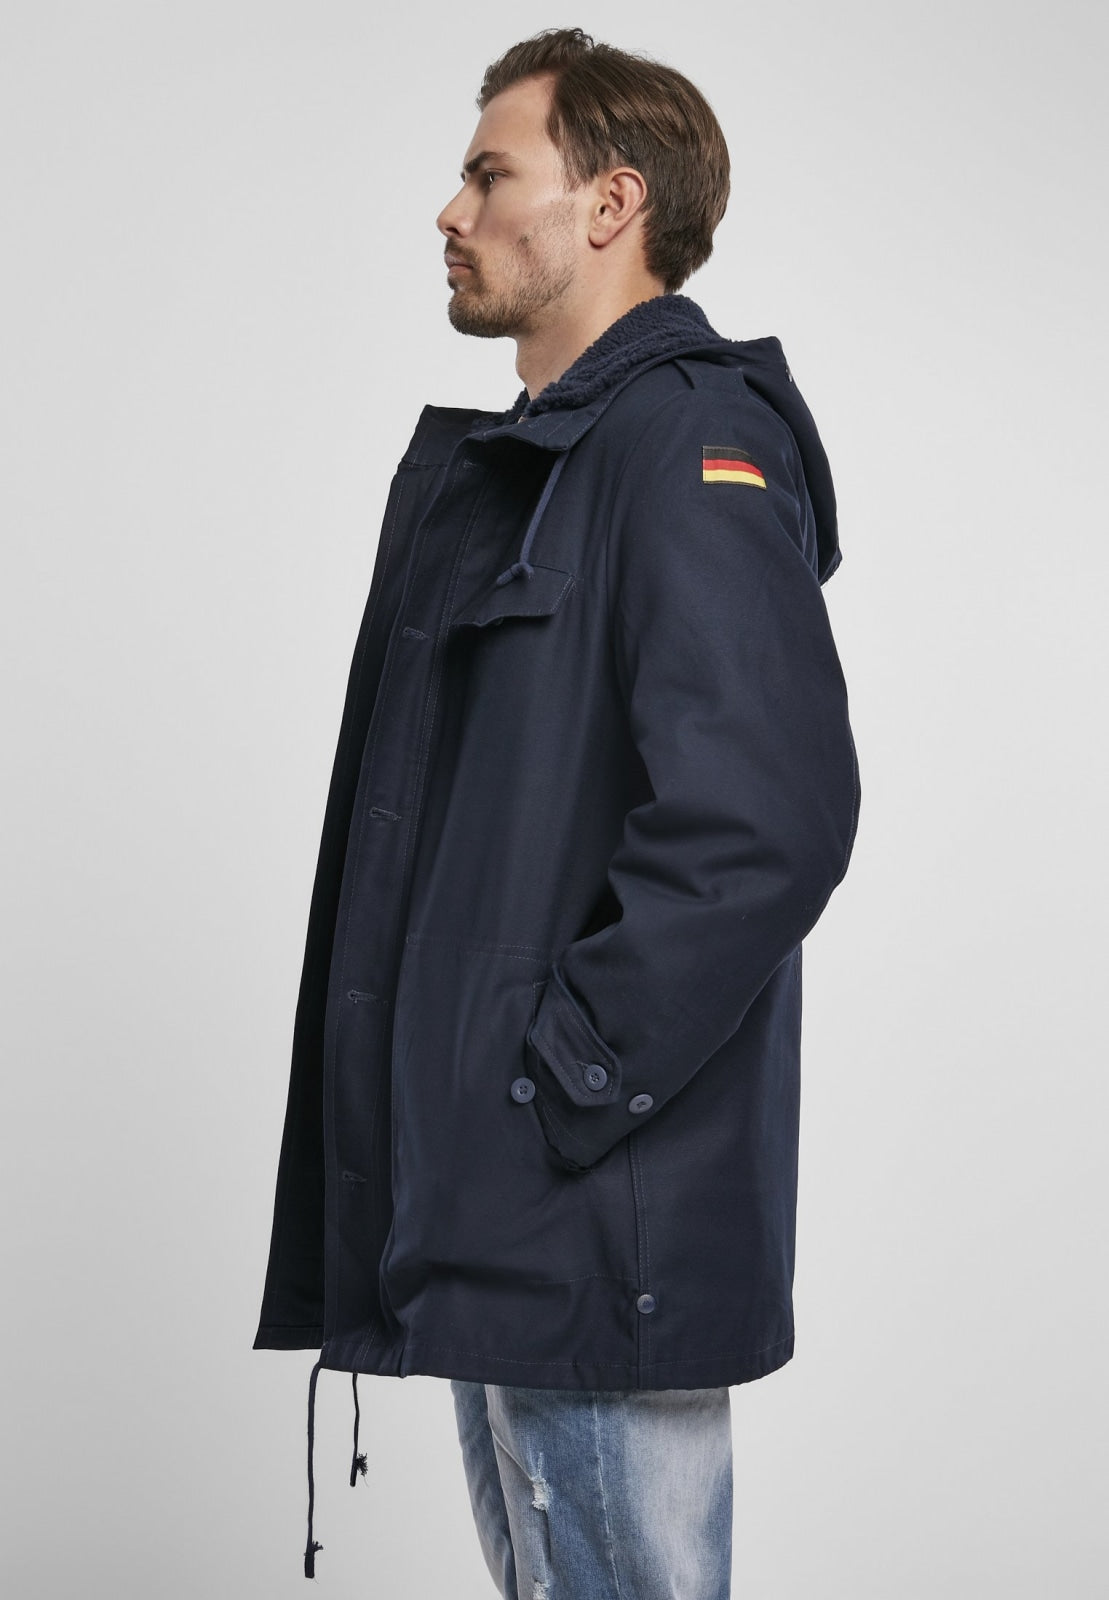 Bw Military Parka German Flag Navy / s Jacket Heavy Brandit